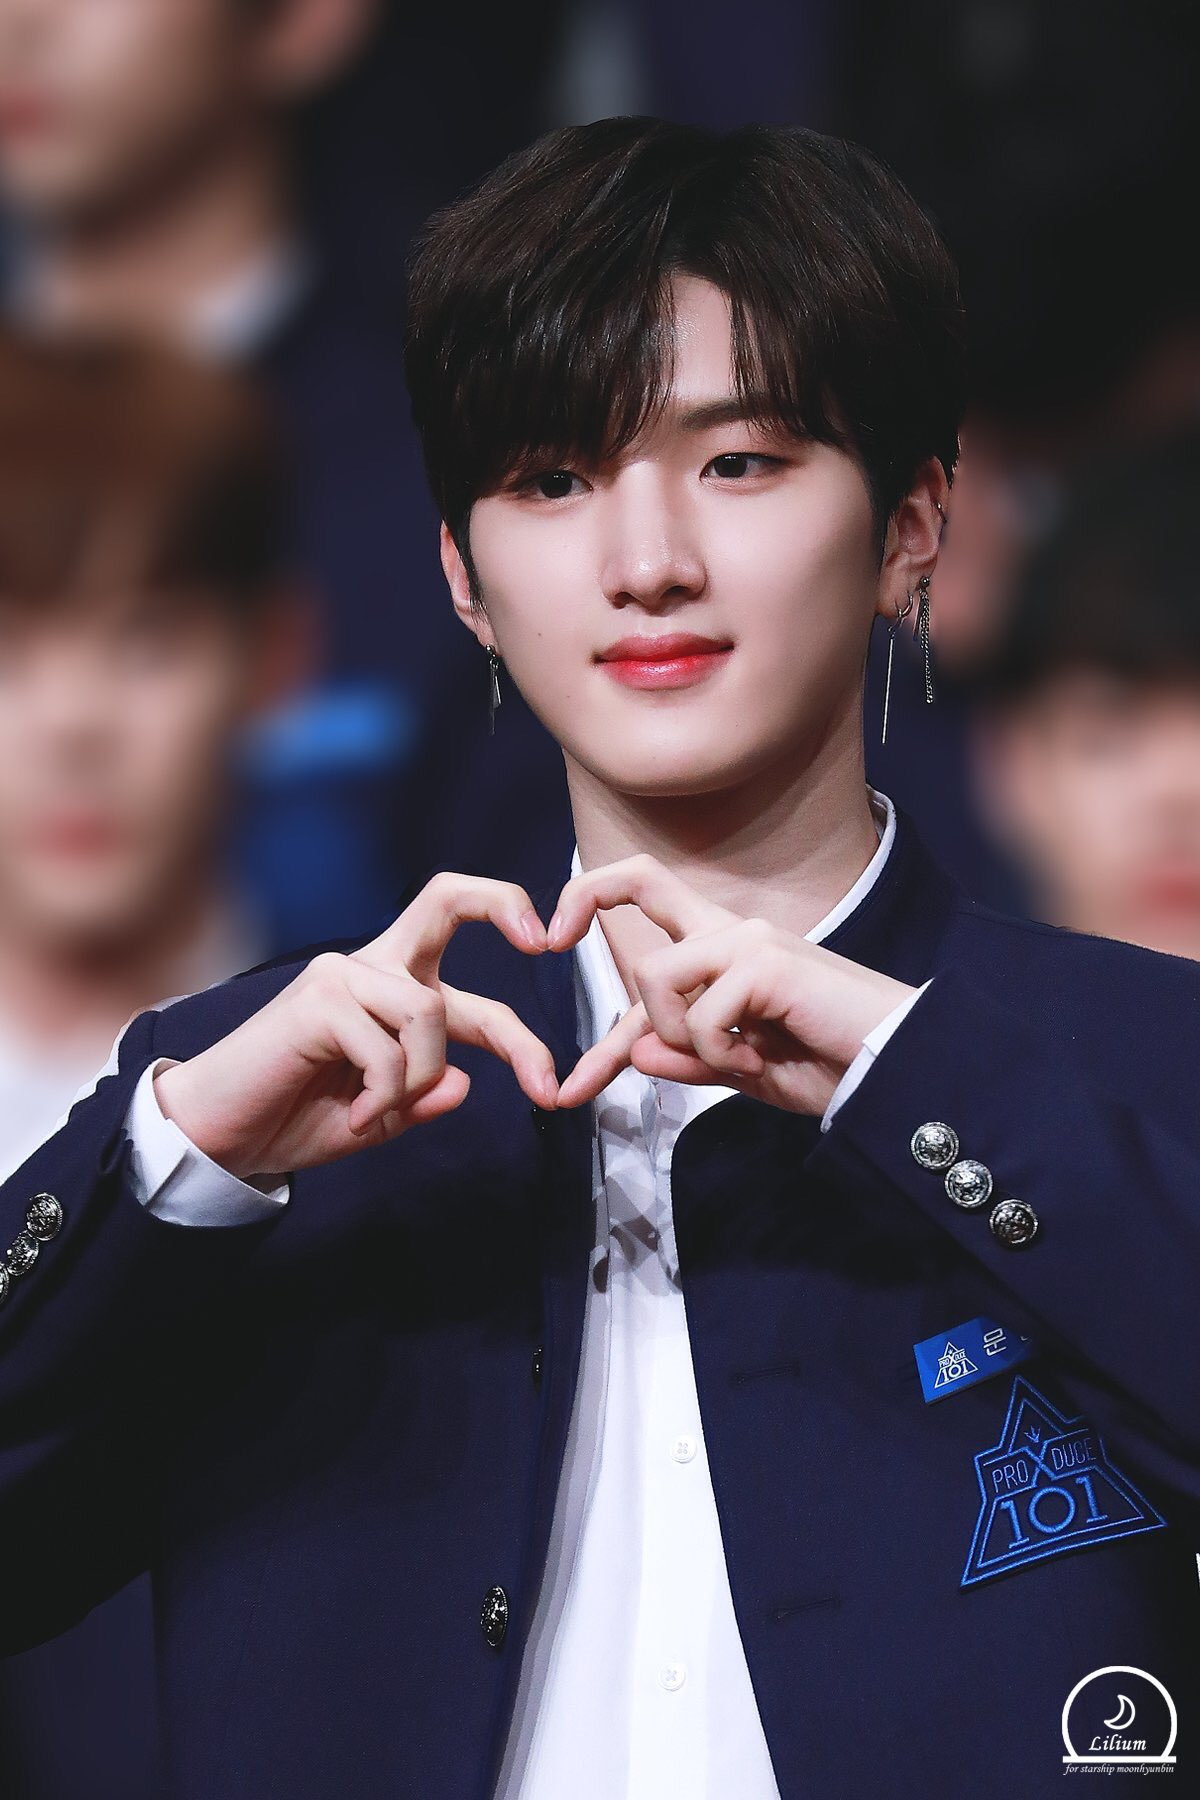 produce x 101, produce x 101 trainees, produce x 101 members, produce x 101 height, produce x 101 company, kpop, trainee, produce x 101 moon hyunbin, moon hyunbin